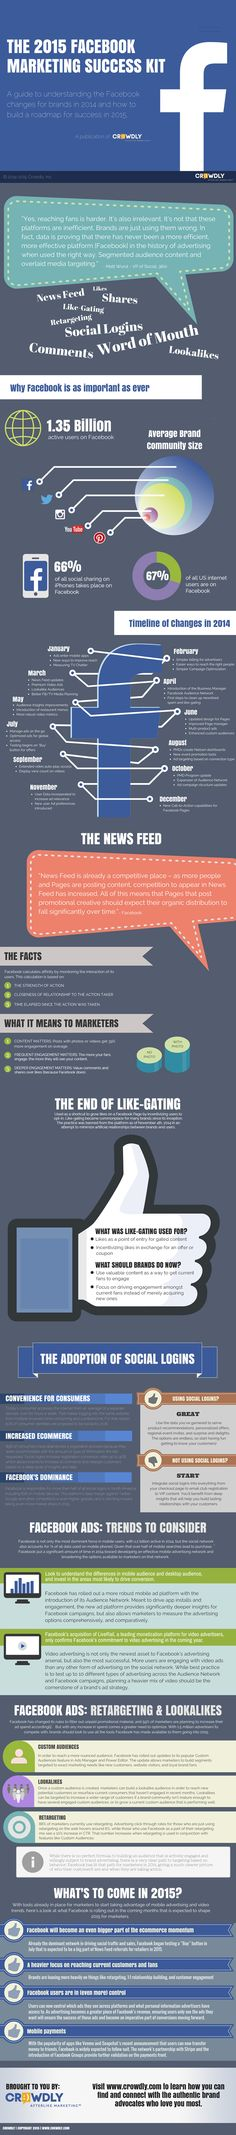 Your 2015 Facebook Marketing Kit for success! #Infographic #socialmedia